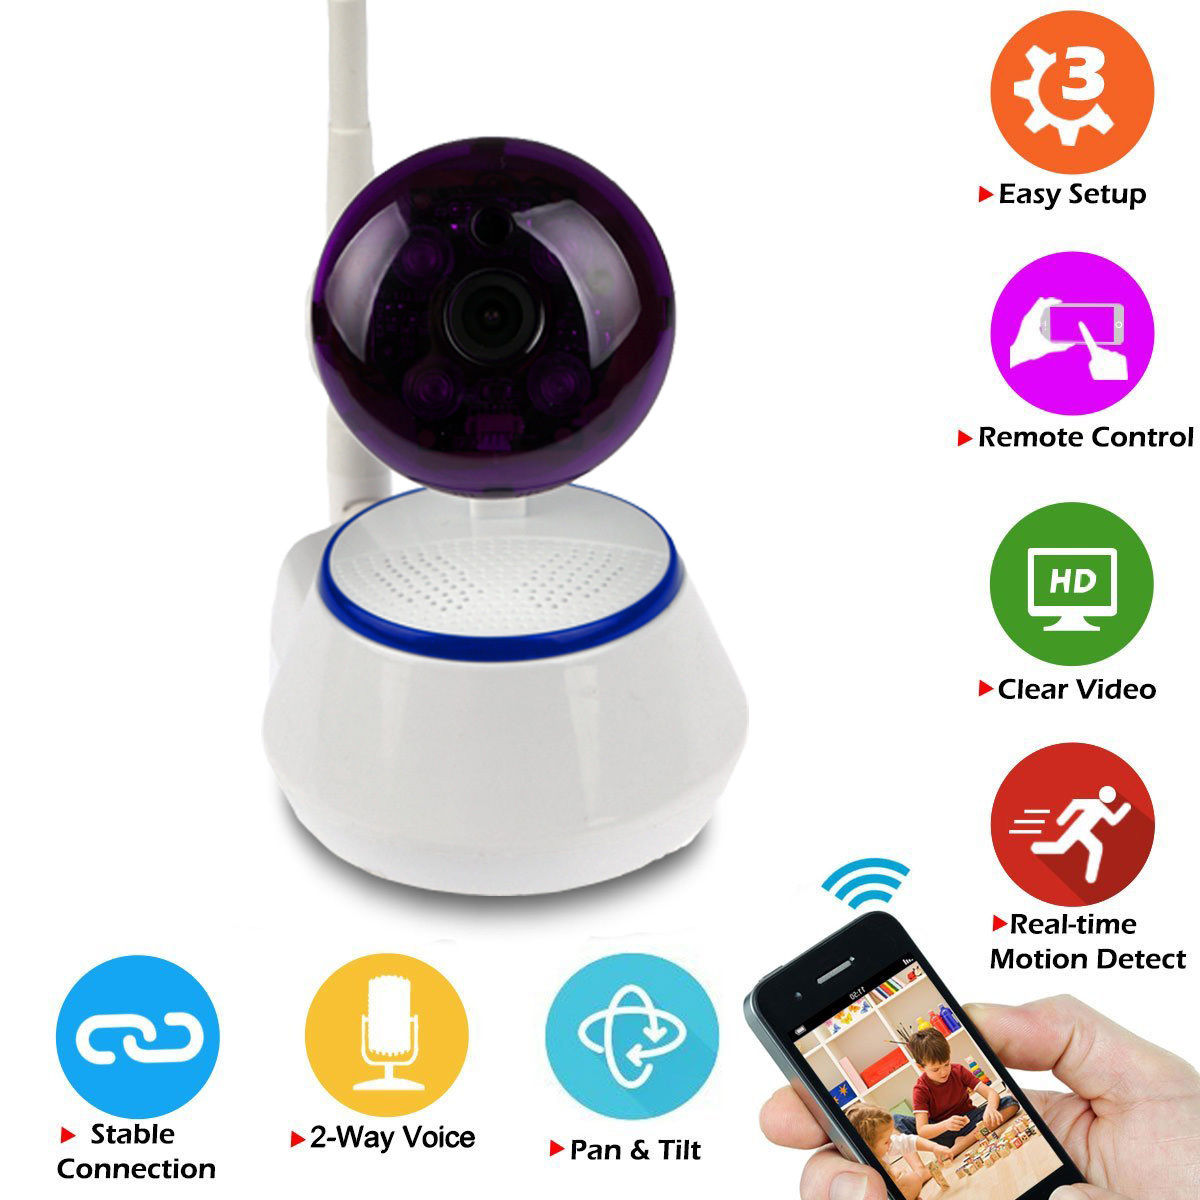 Zimtown Wireless Pan Tilt 720P Security Network IP Camera Night Vision Wifi Webcam